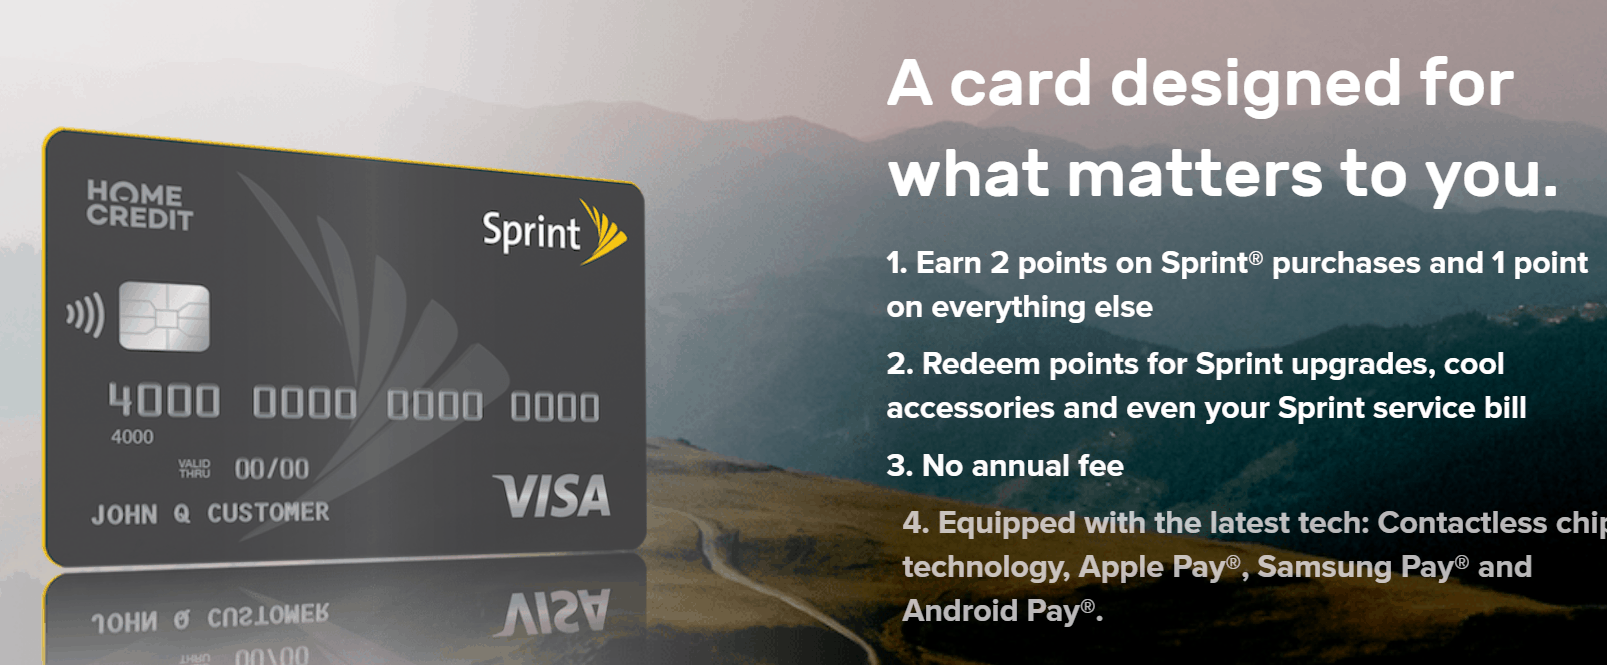 Sprint Visa Credit Card Review: 2x Points + 0% Intro APR